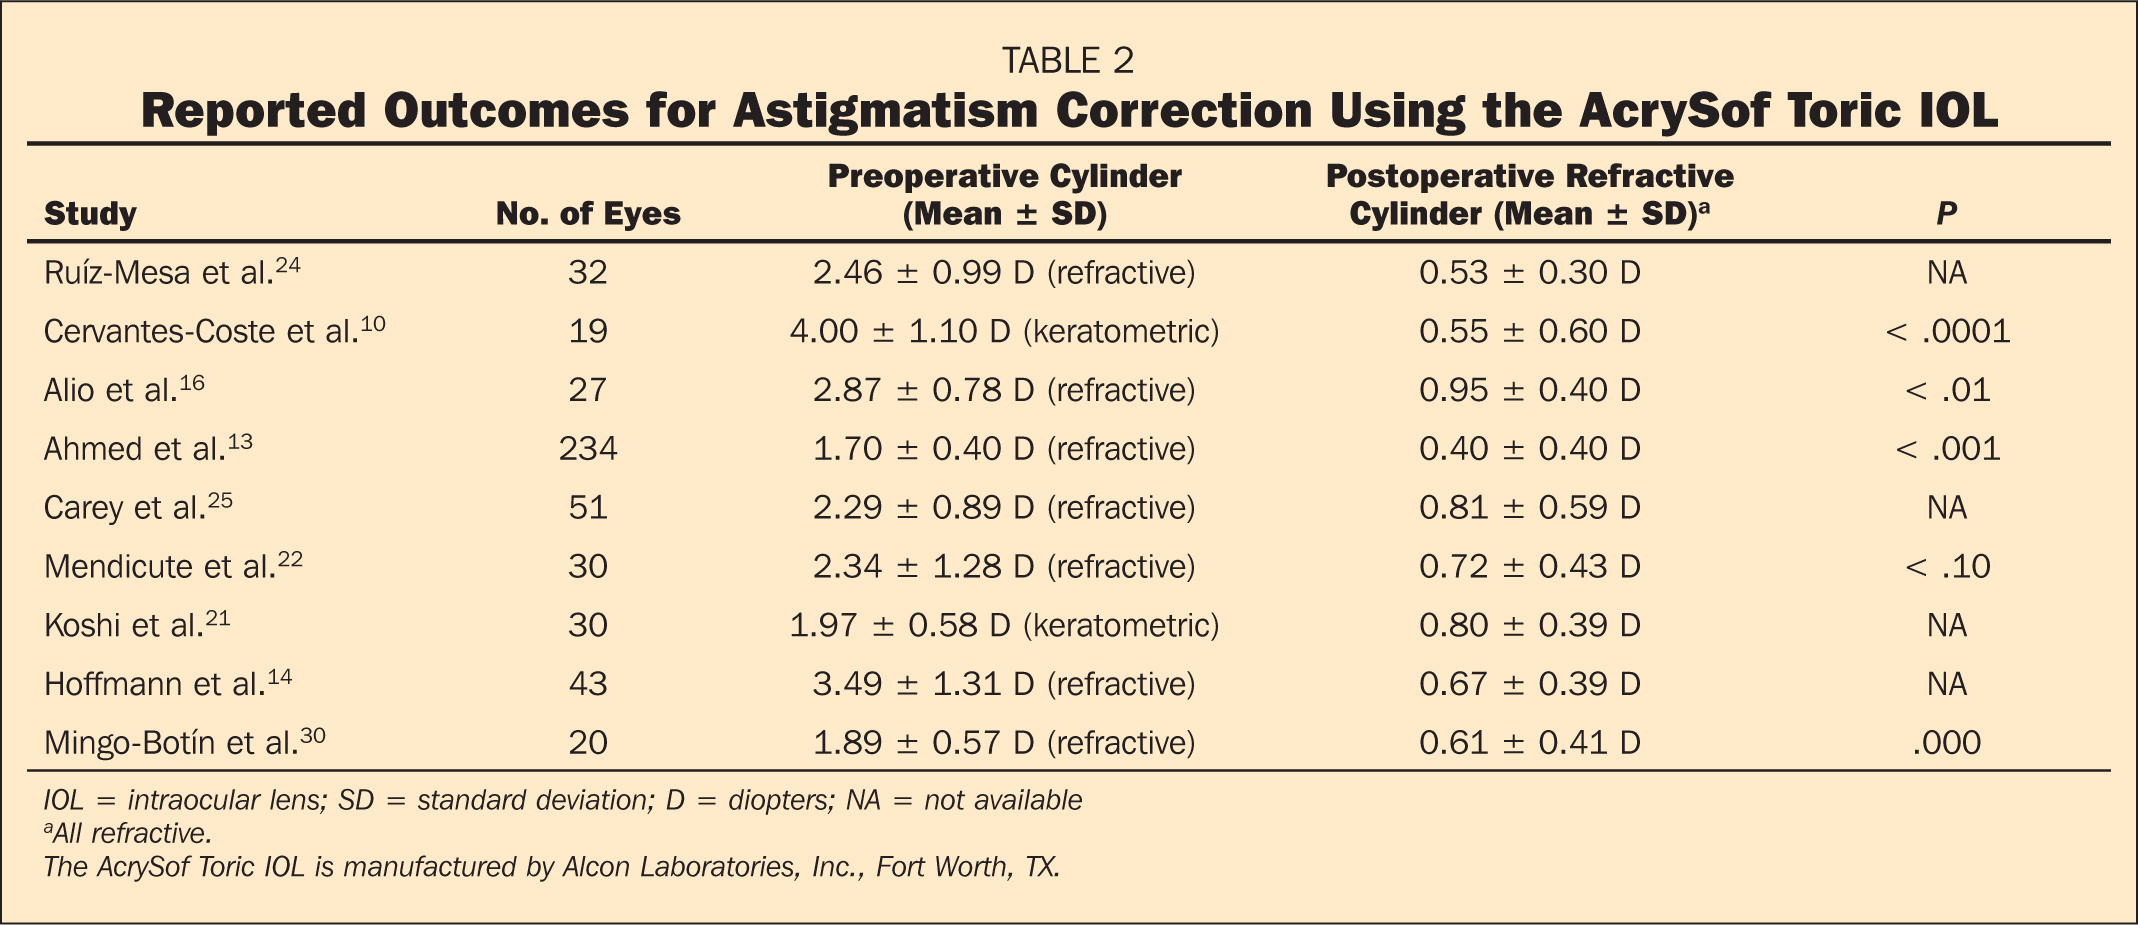 Reported Outcomes for Astigmatism Correction Using the AcrySof Toric IOL